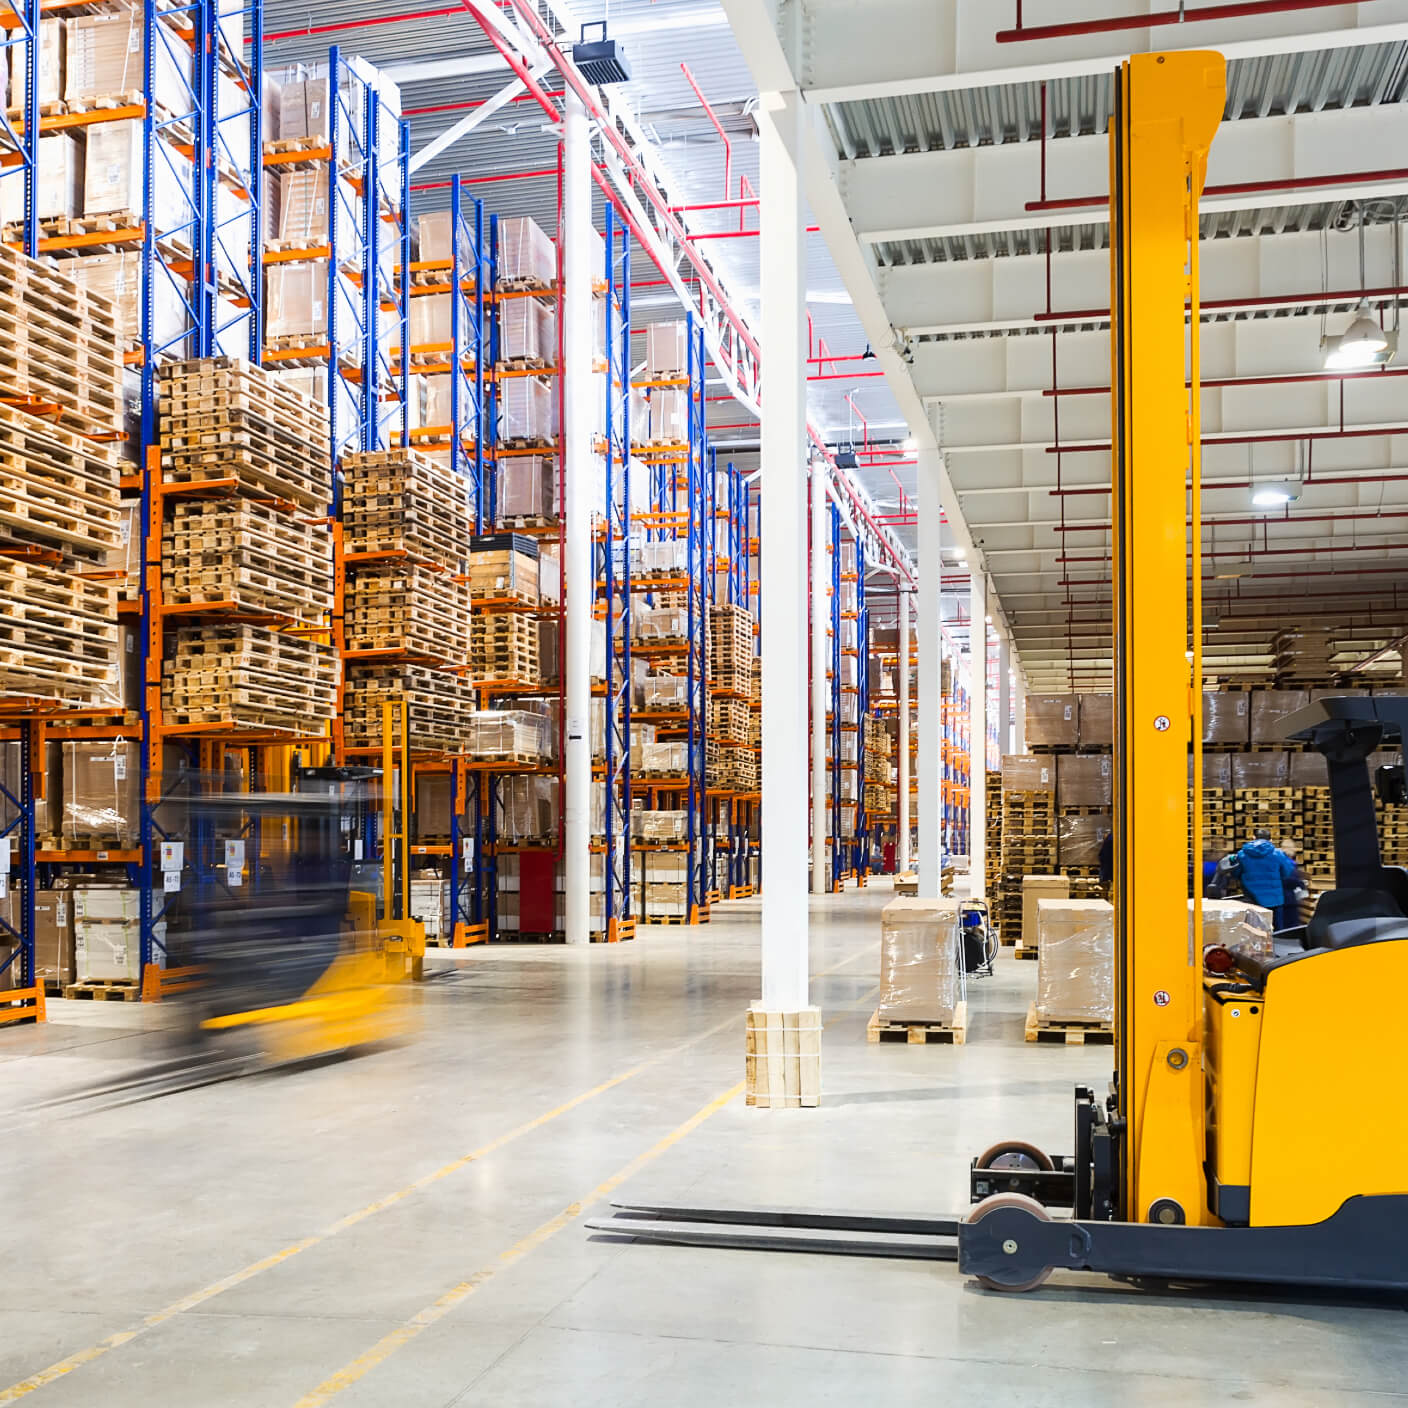 manufacturing warehouse with forklift